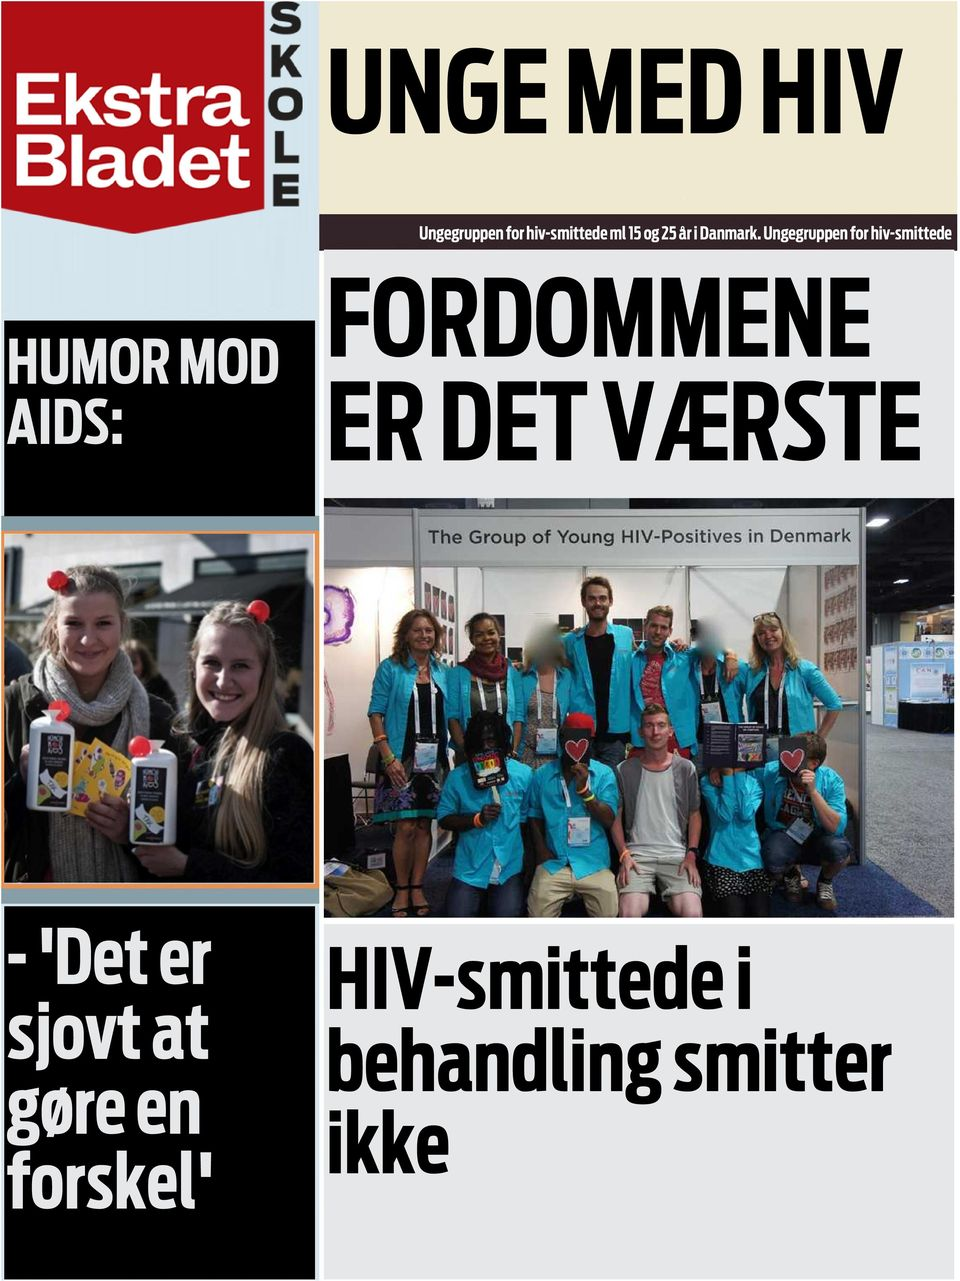 Ungegruppen for hiv-smittede HUMOR MOD AIDS: